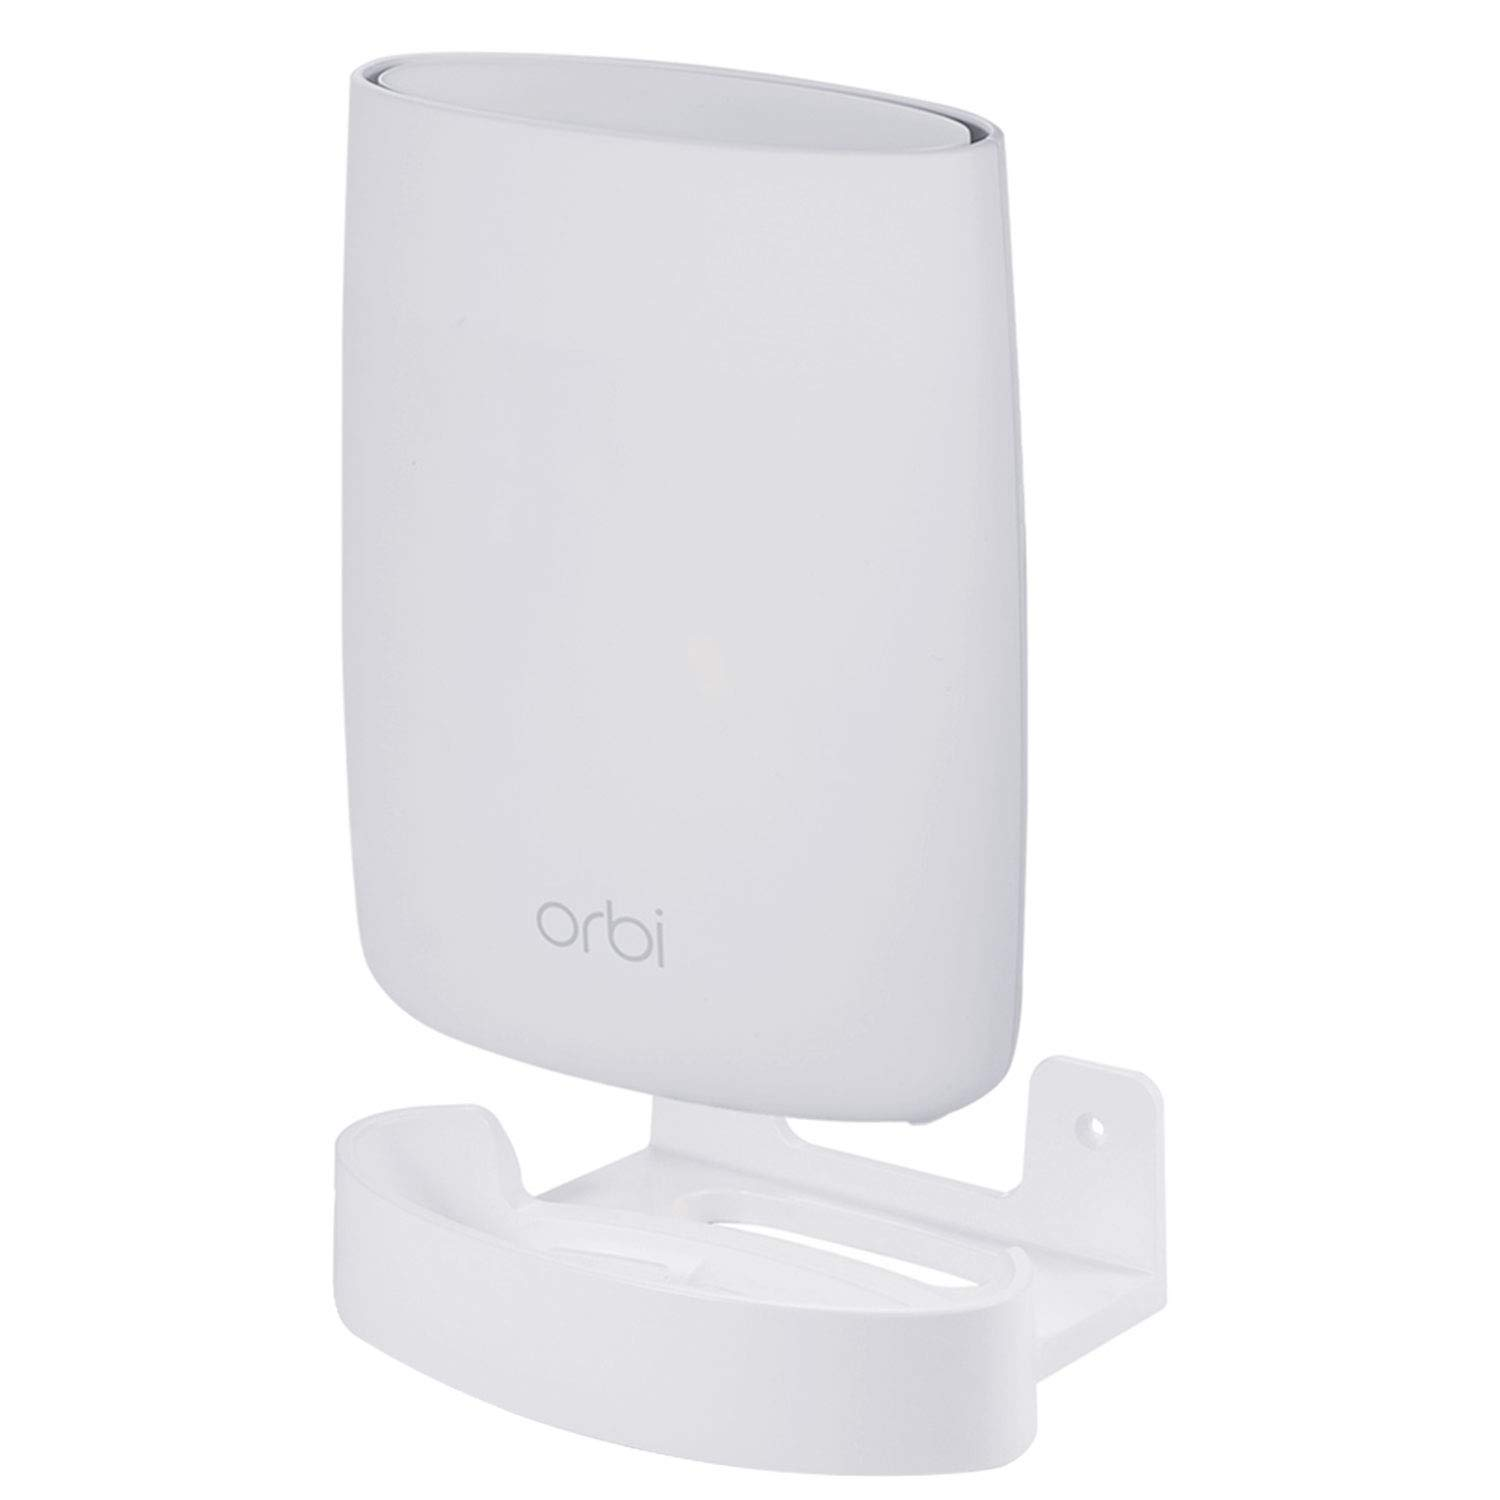 Koroao Wall Mount Holder for Orbi Home WiFi, Wall Ceiling